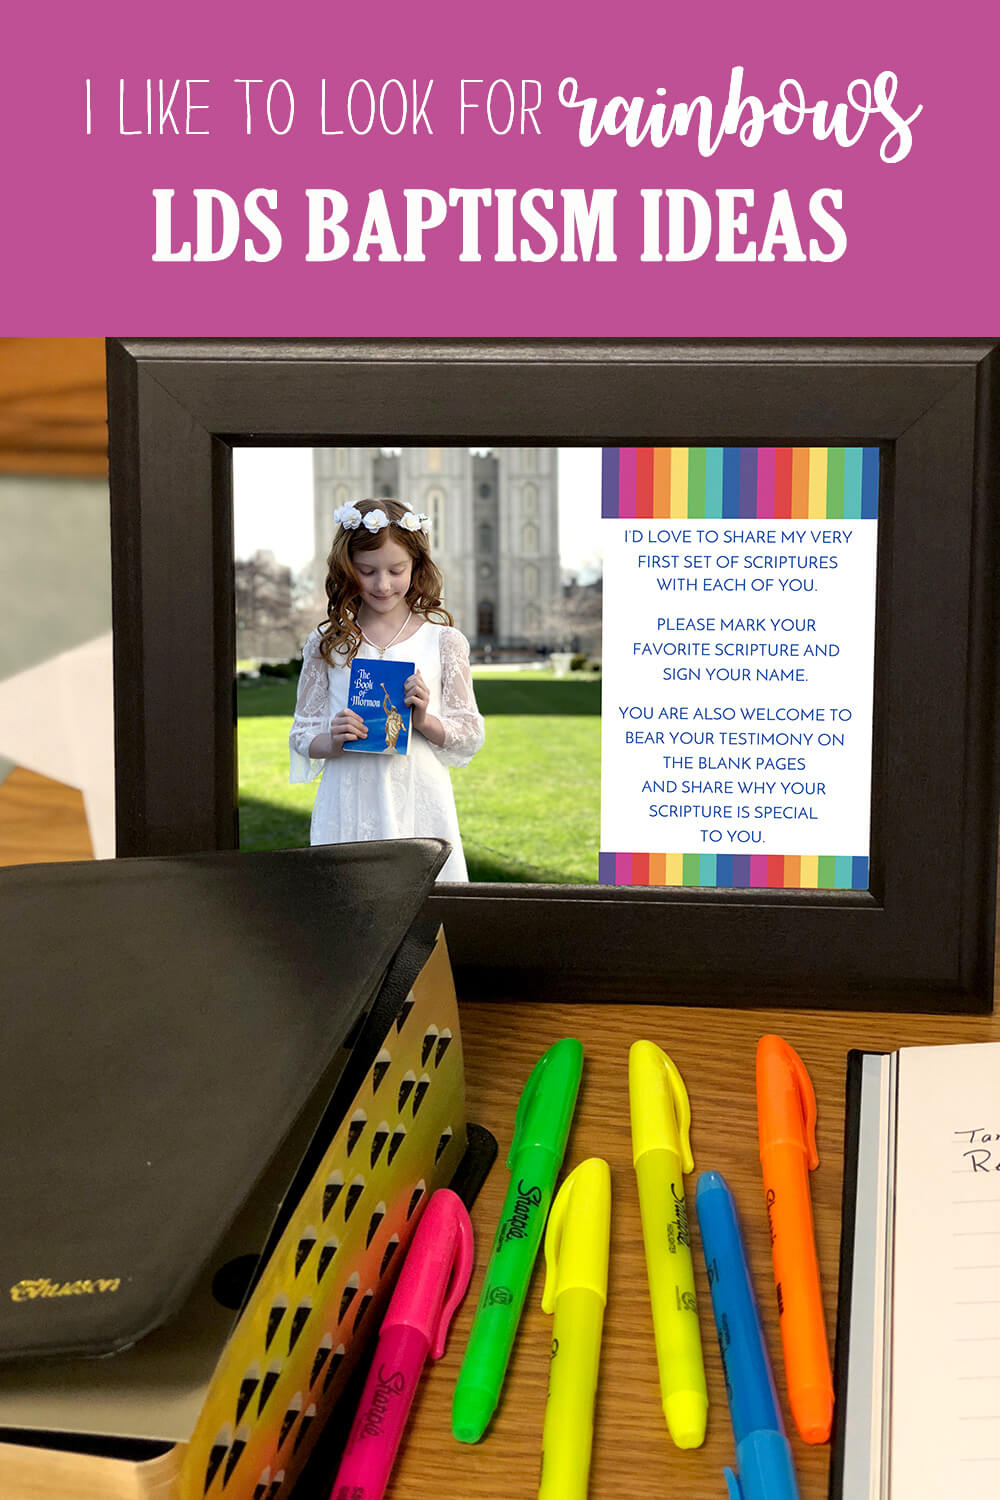 Scripture marking at a Rainbow themed LDS baptism ideas